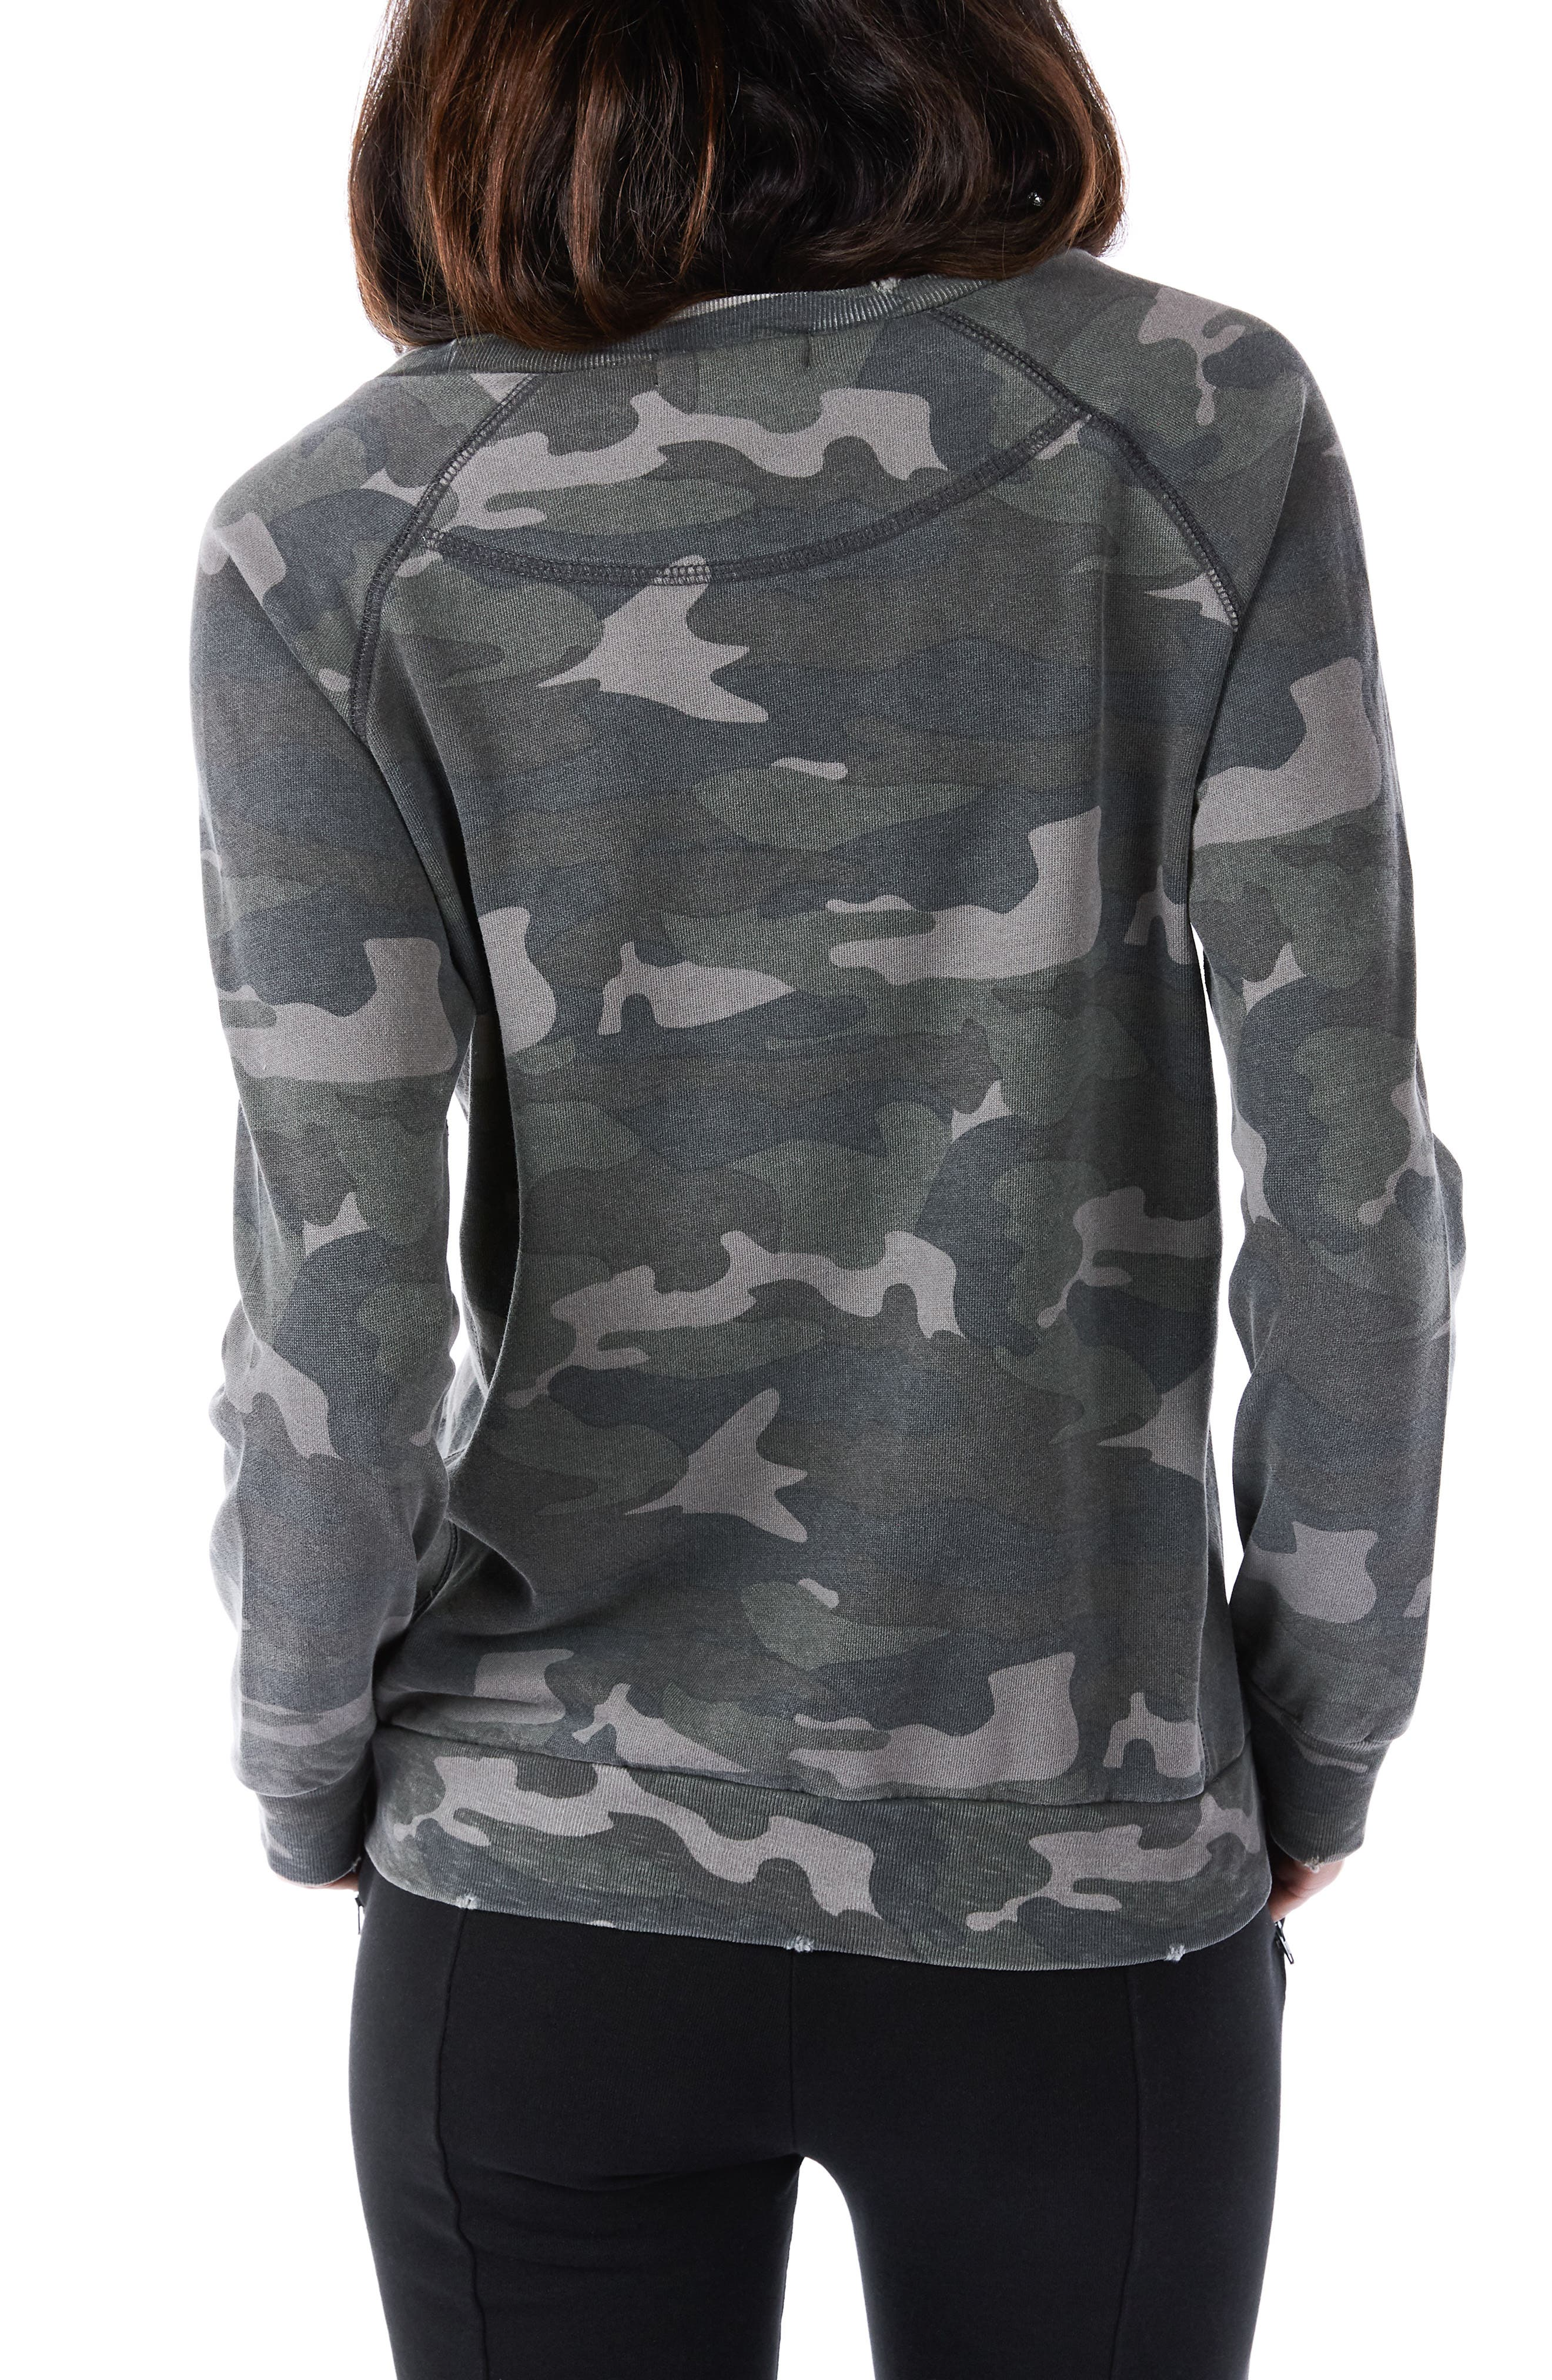 Distressed Camo Sweatshirt,                             Alternate thumbnail 2, color,                             Army Camo